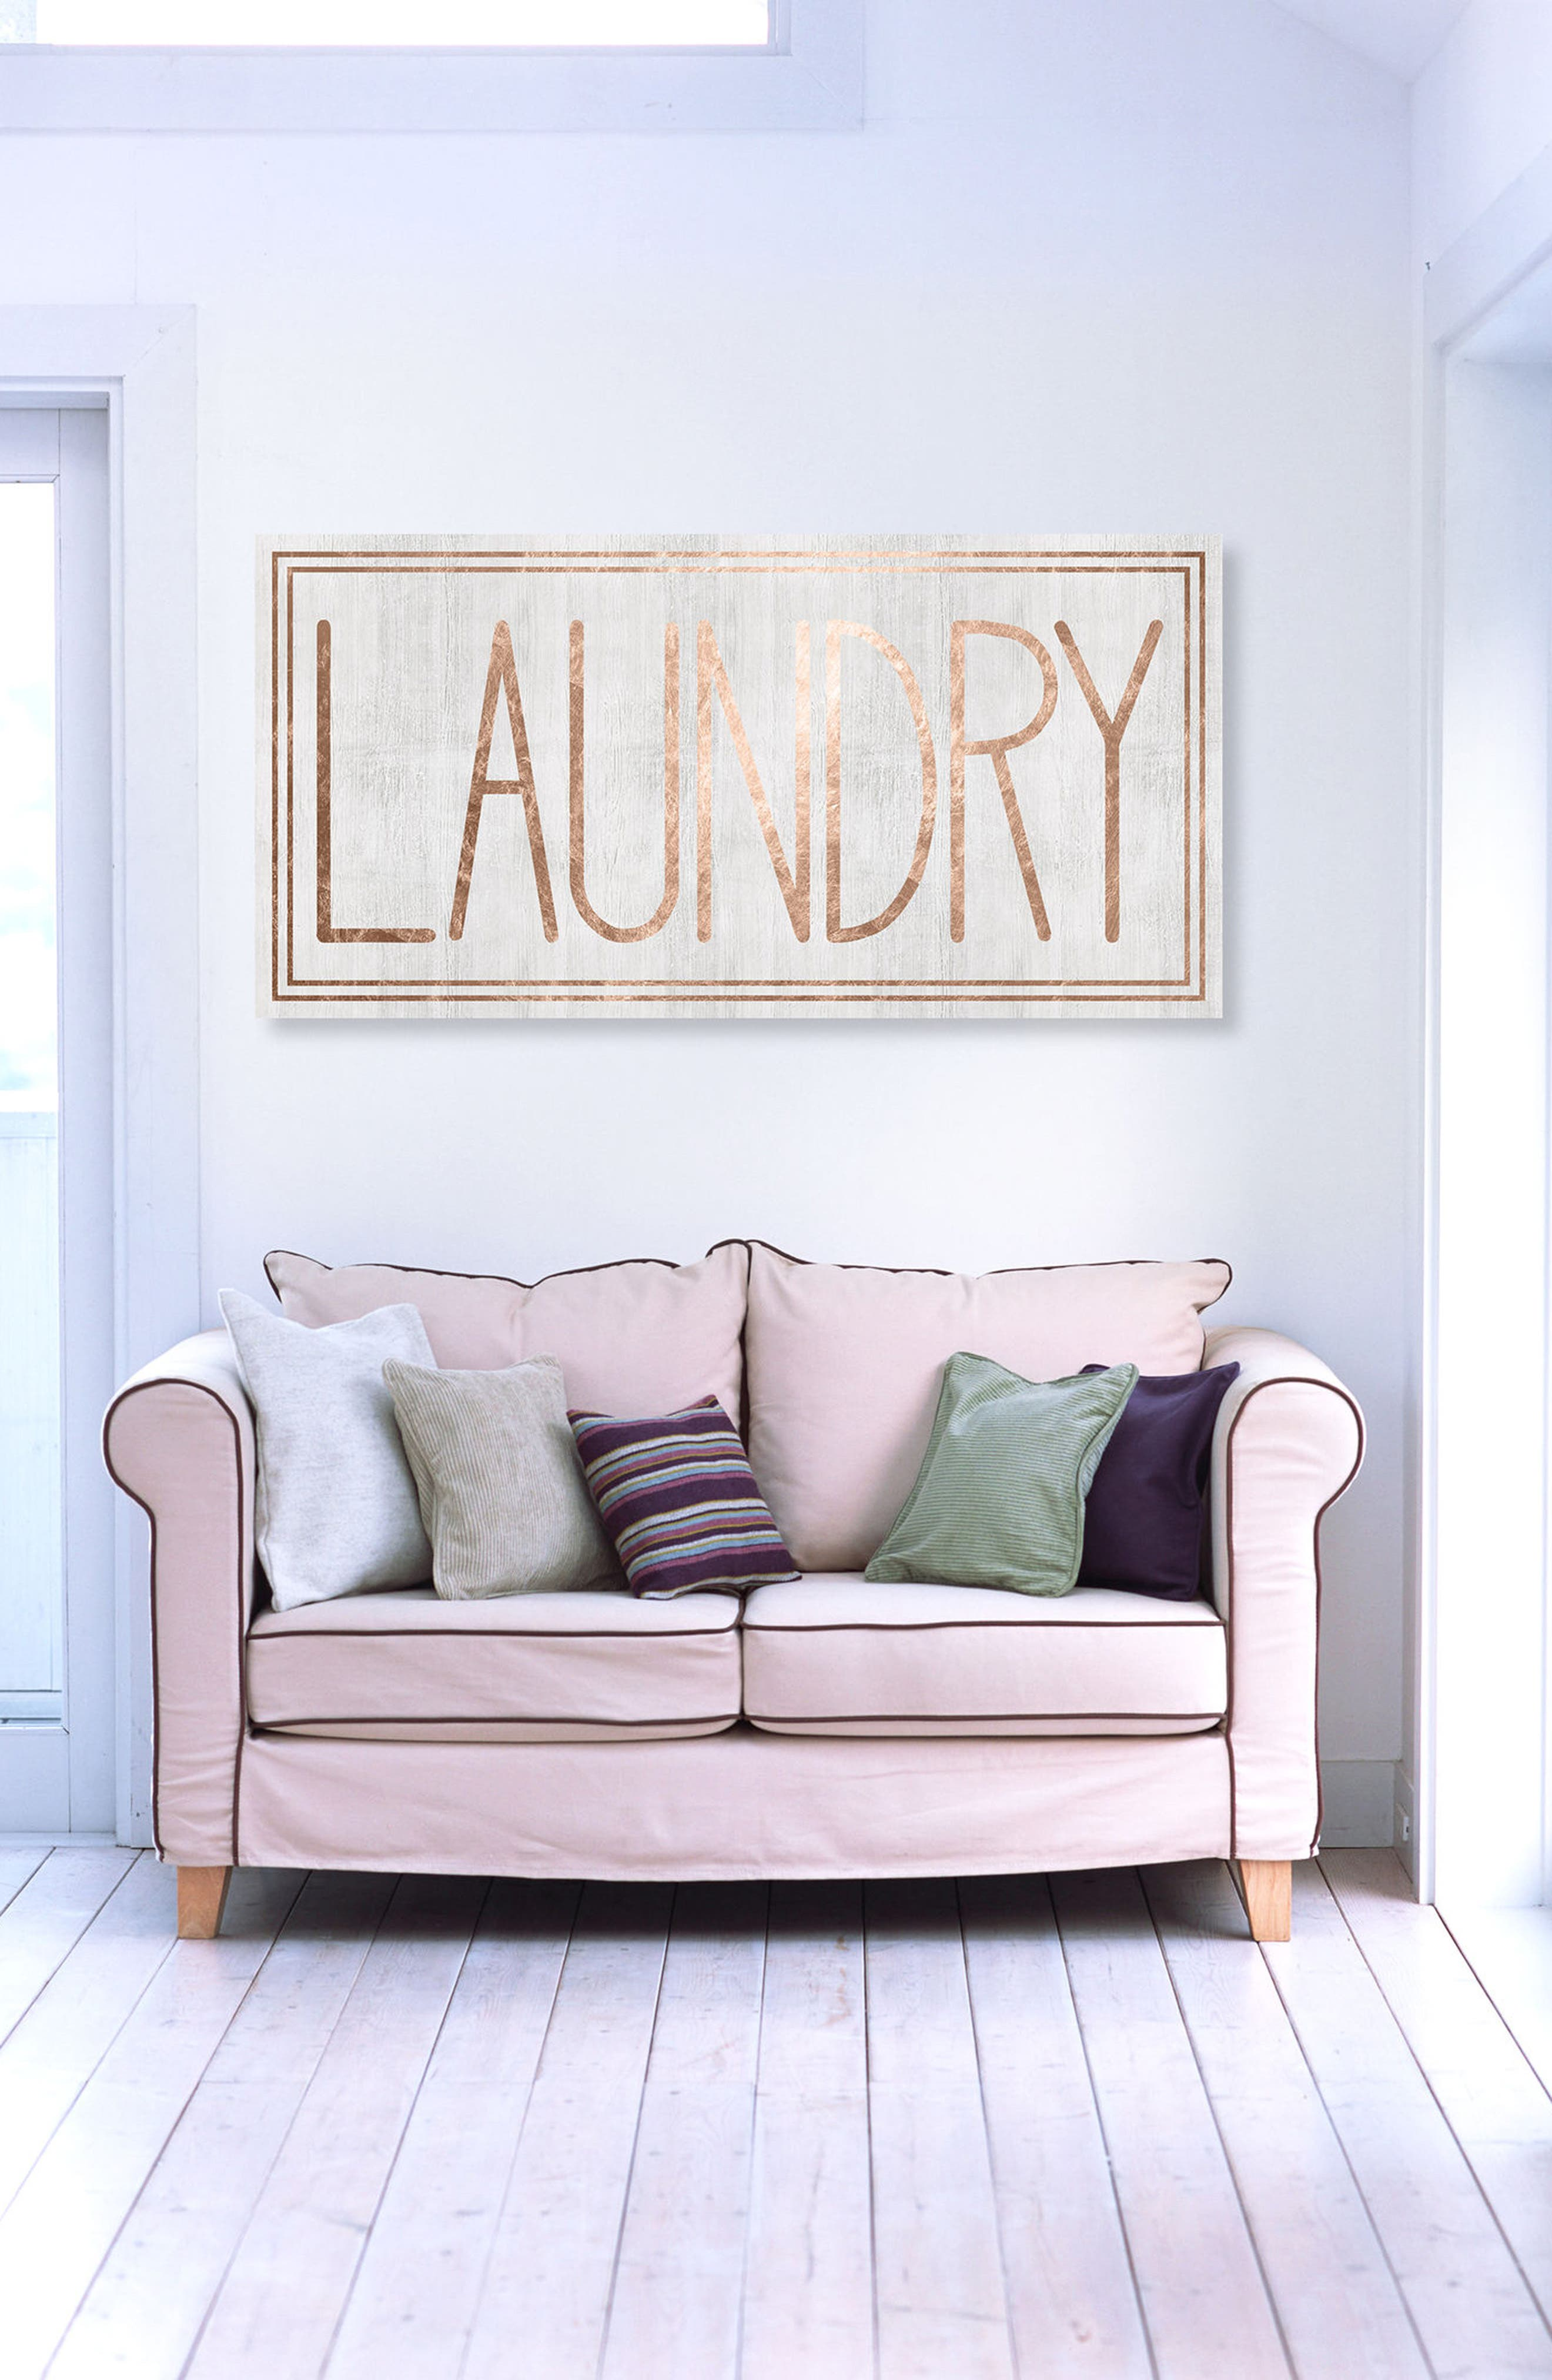 Laundry Canvas Wall Art,                             Alternate thumbnail 2, color,                             100